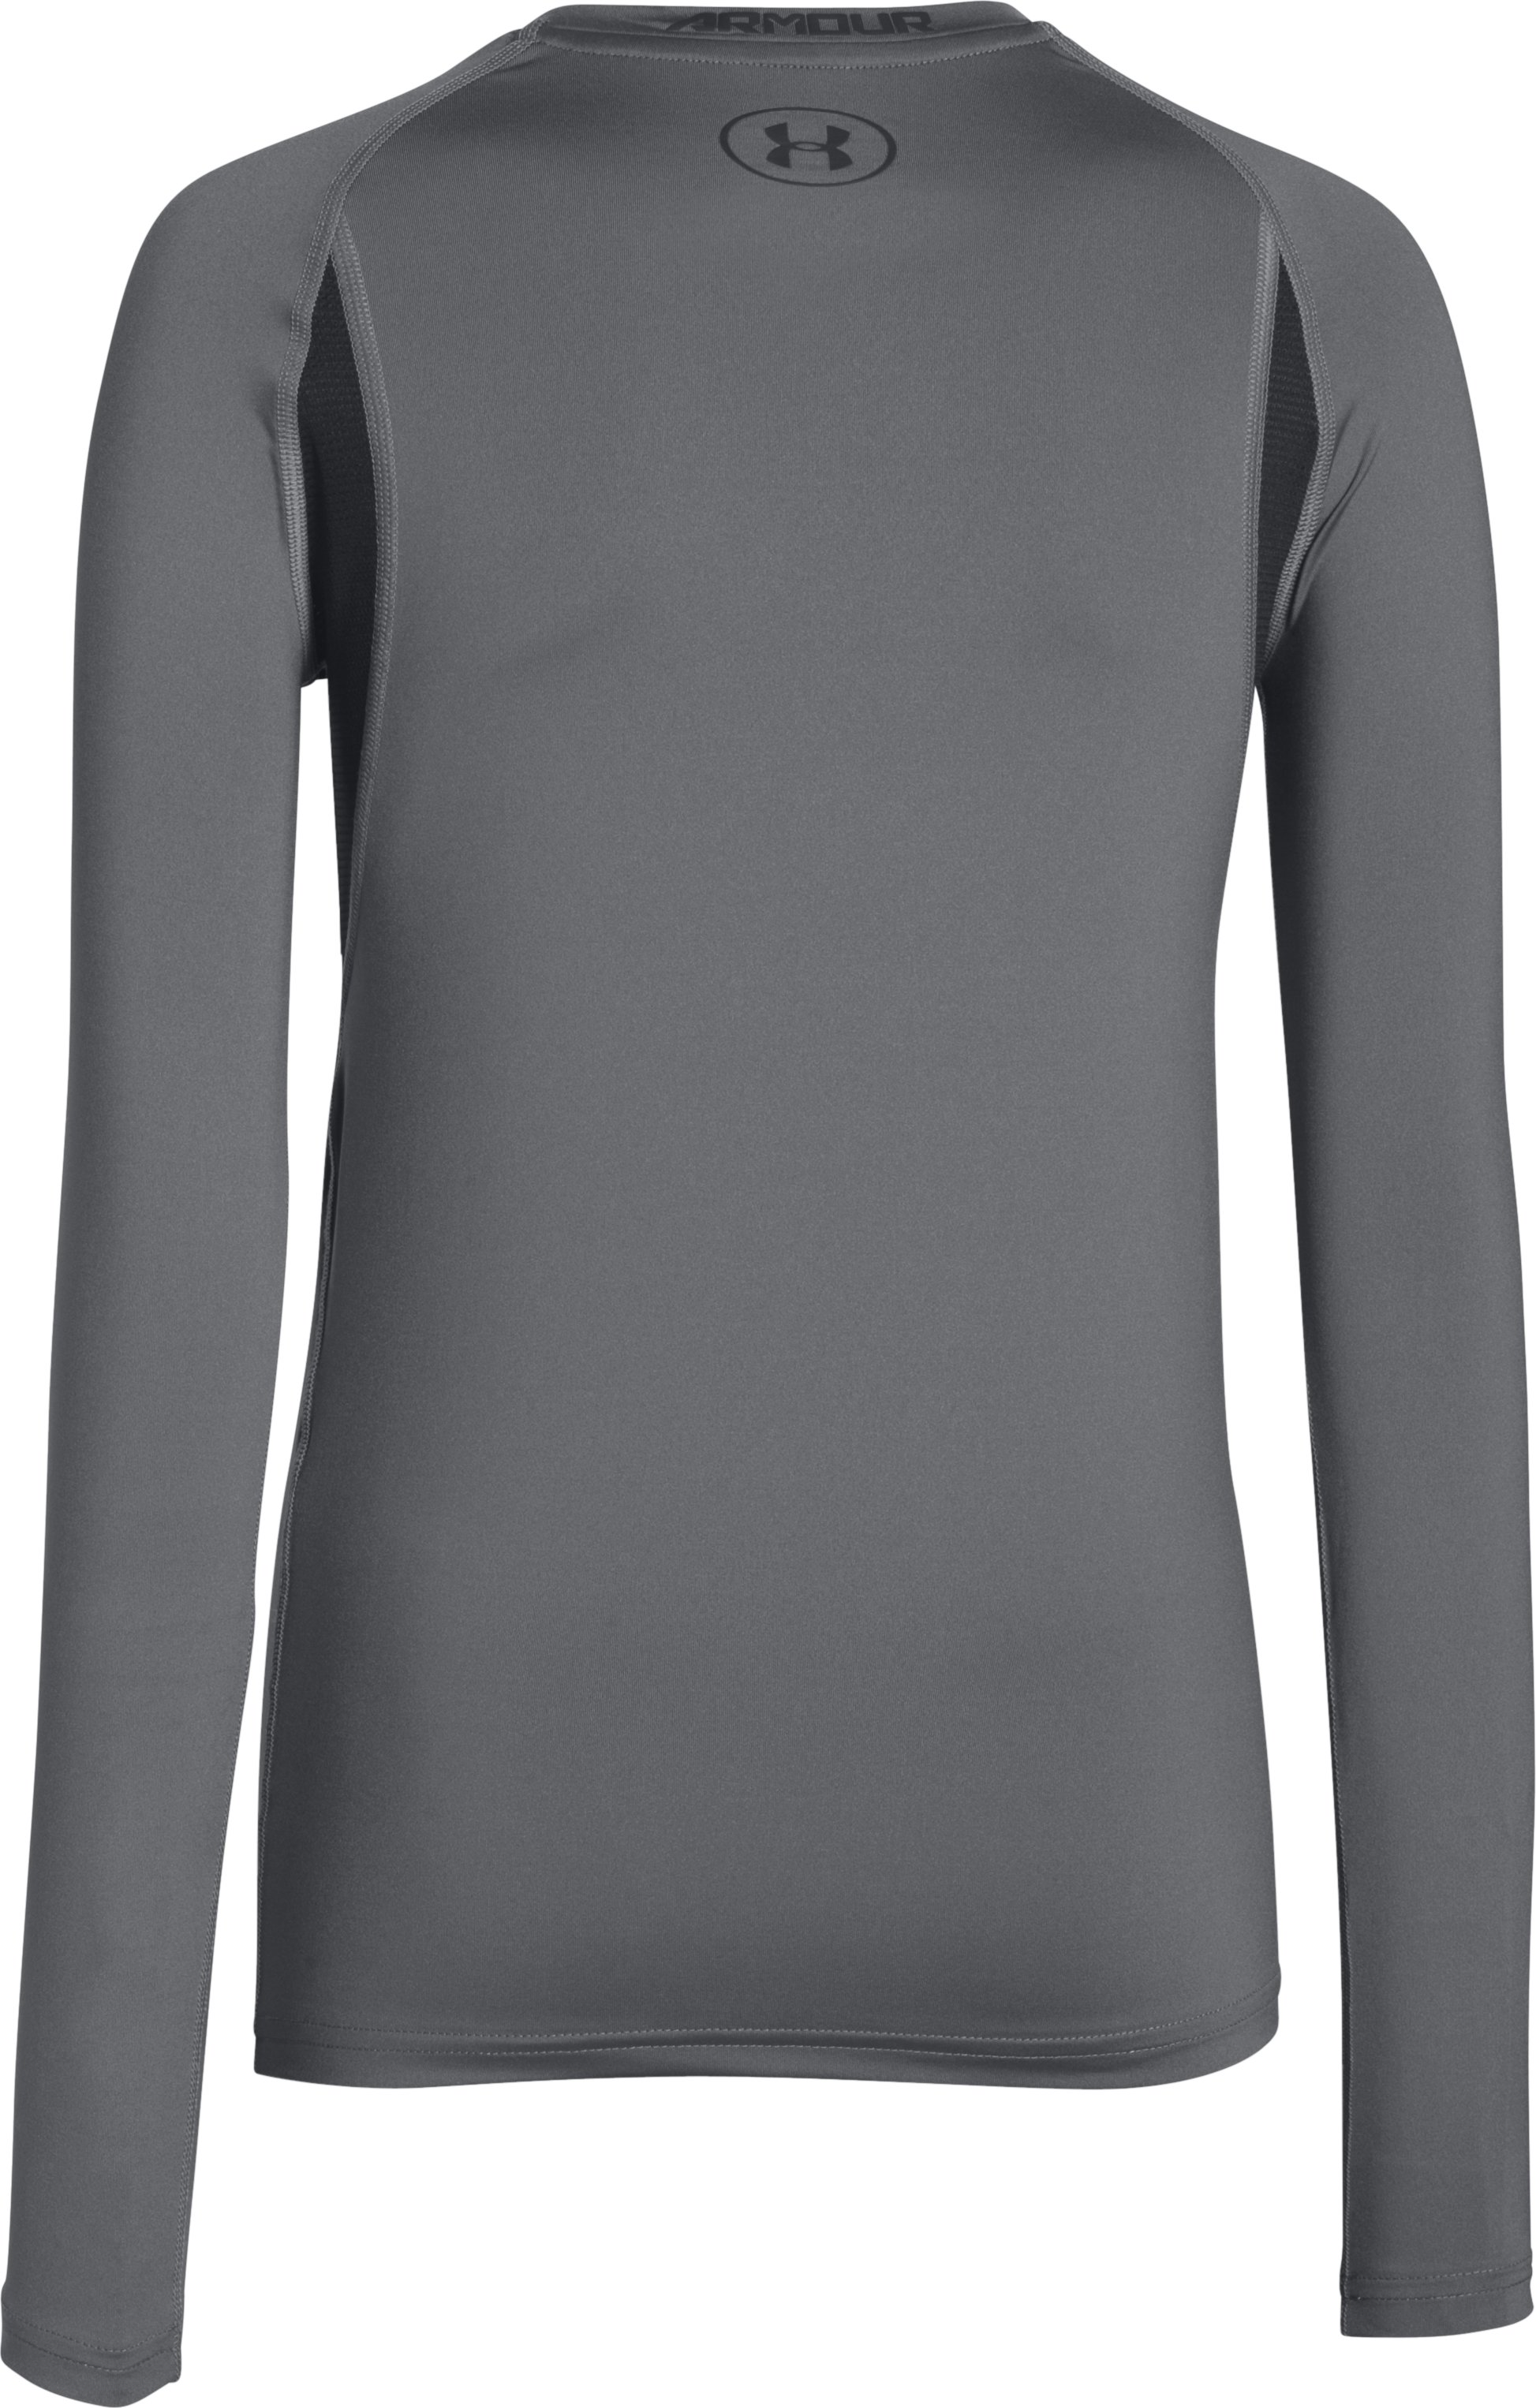 Boys' UA HeatGear® Armour Up Fadeaway Fitted Long Sleeve Shirt, Graphite,